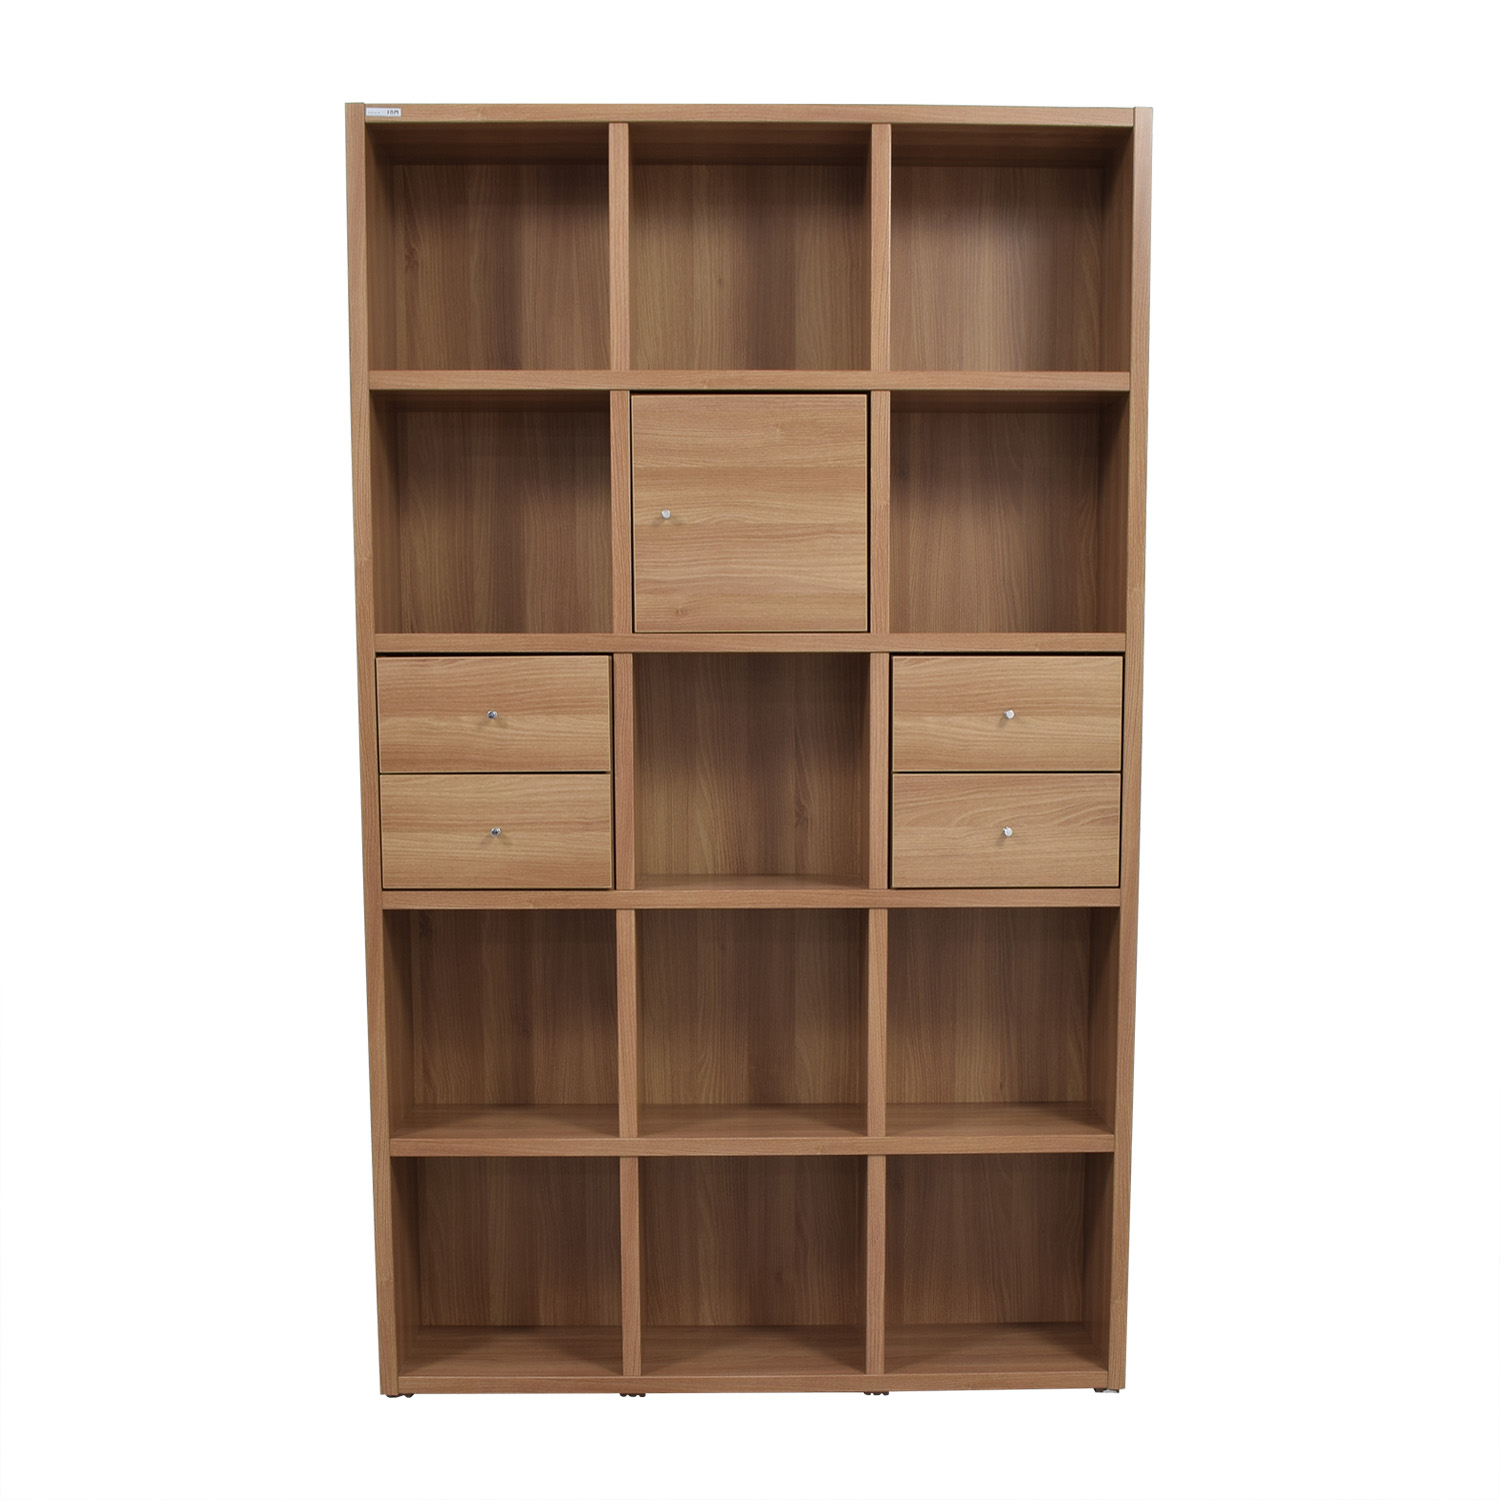 Hansaem Hansaem Natural Wood Bookshelf with Drawers and Storage on sale